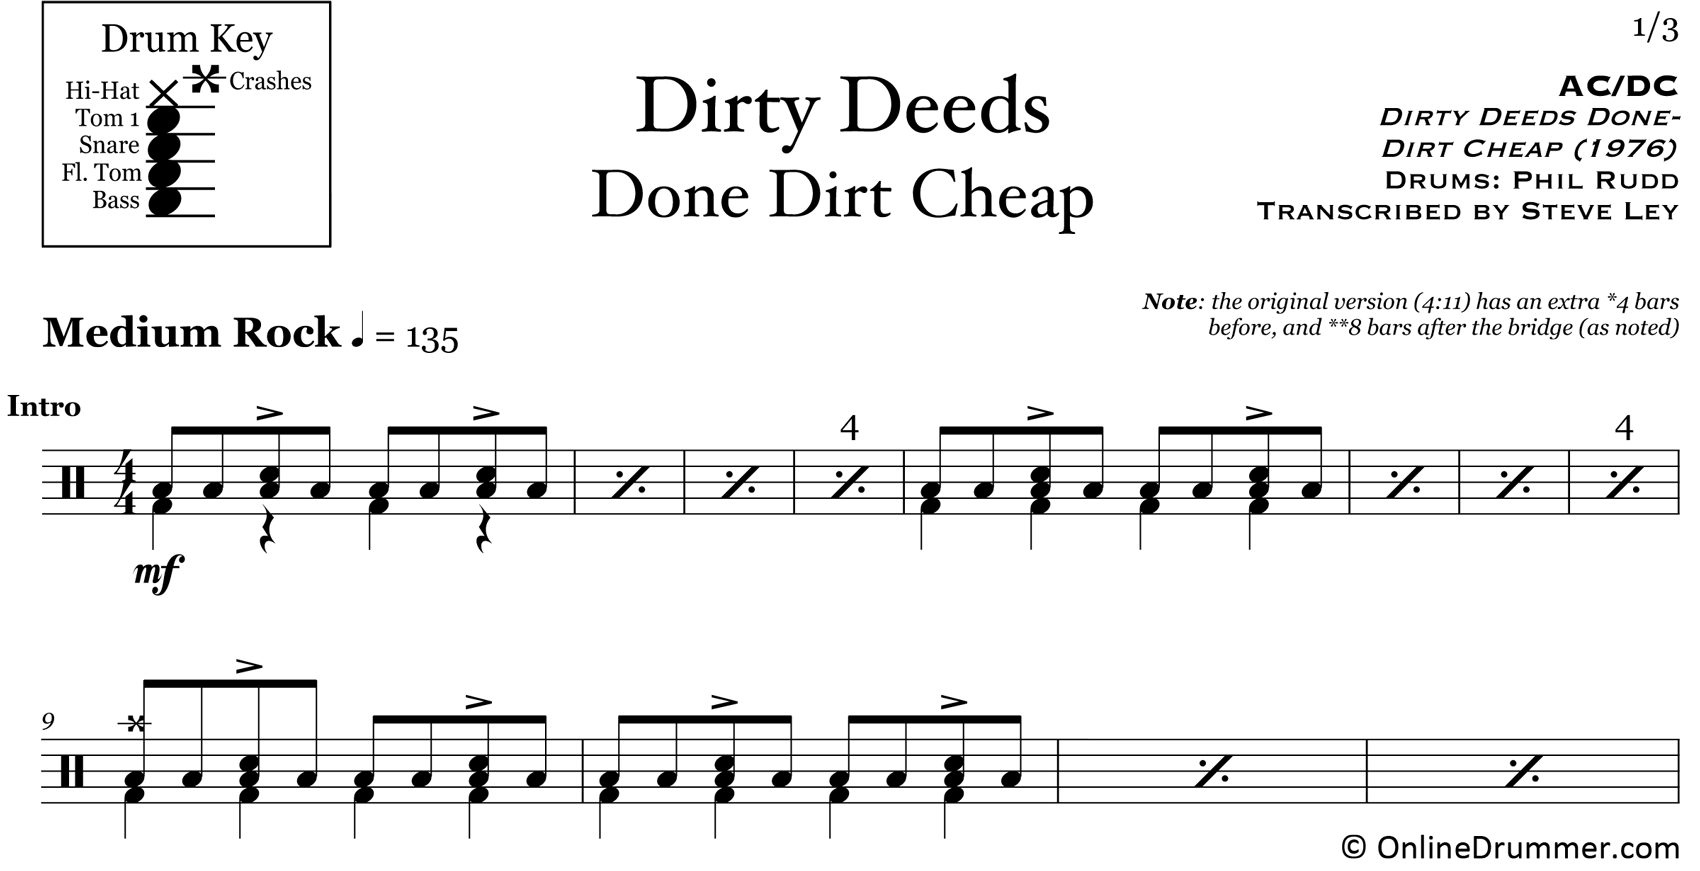 Dirty Deeds Done Dirt Cheap - ACDC - Drum Sheet Music